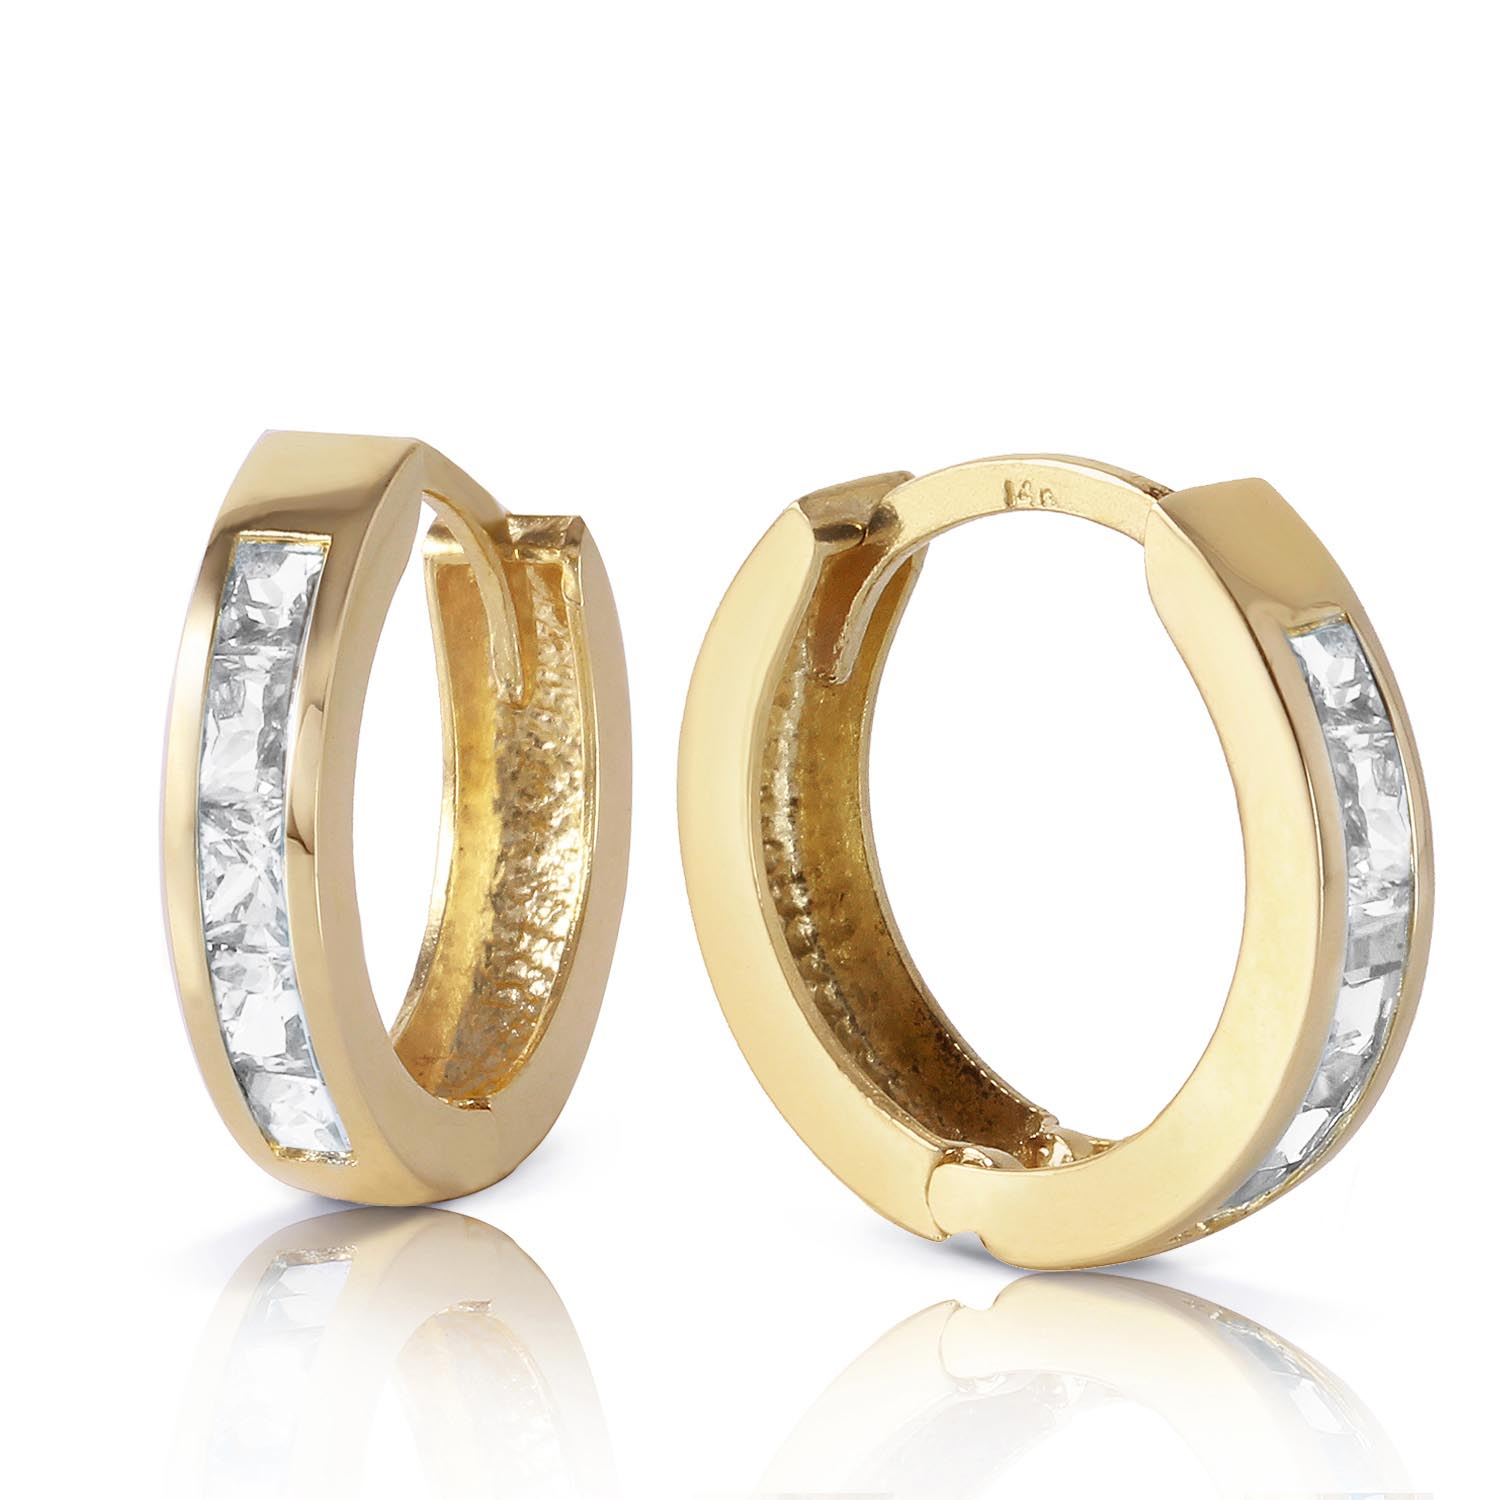 White Topaz Huggie Earrings 1.2 ctw in 9ct Gold